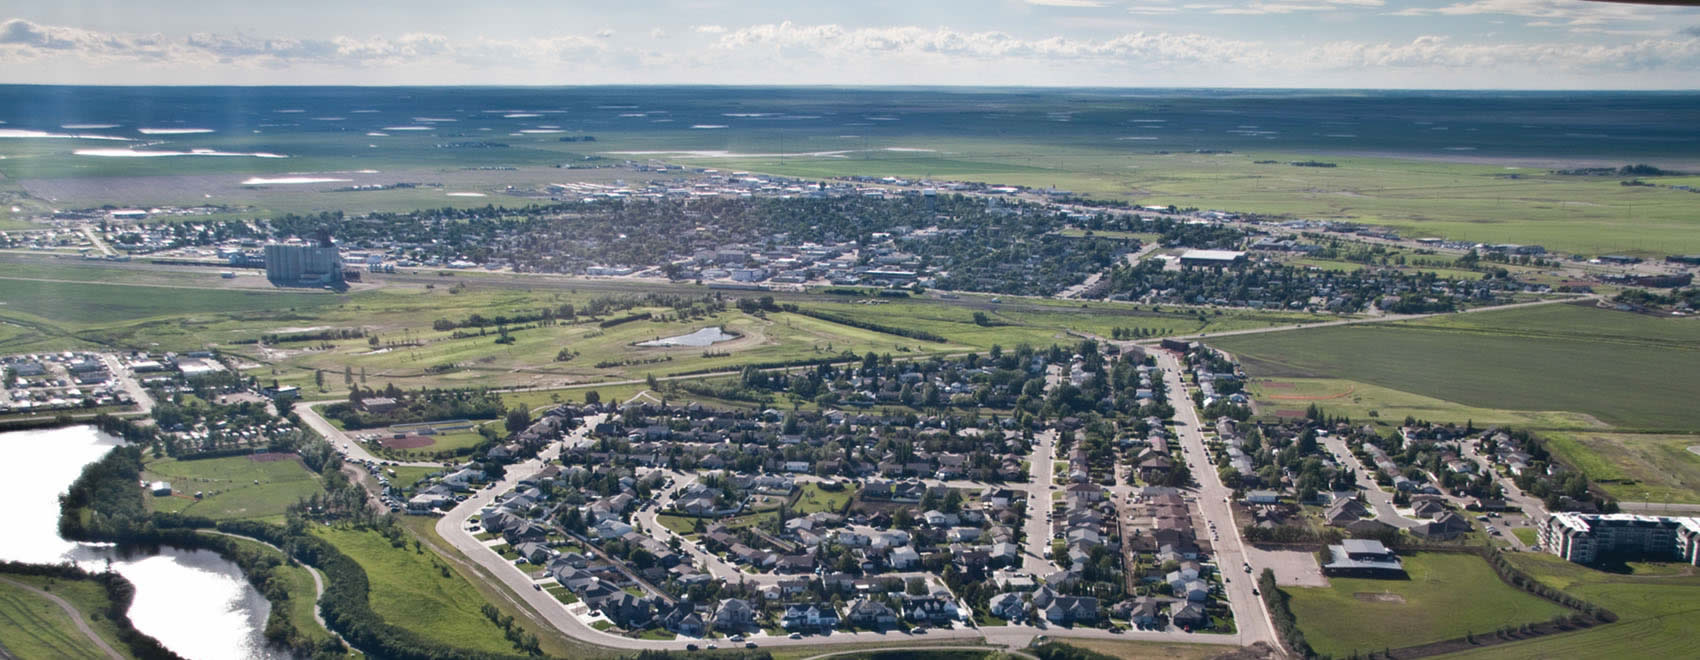 Town of Kindersley - Aerial View